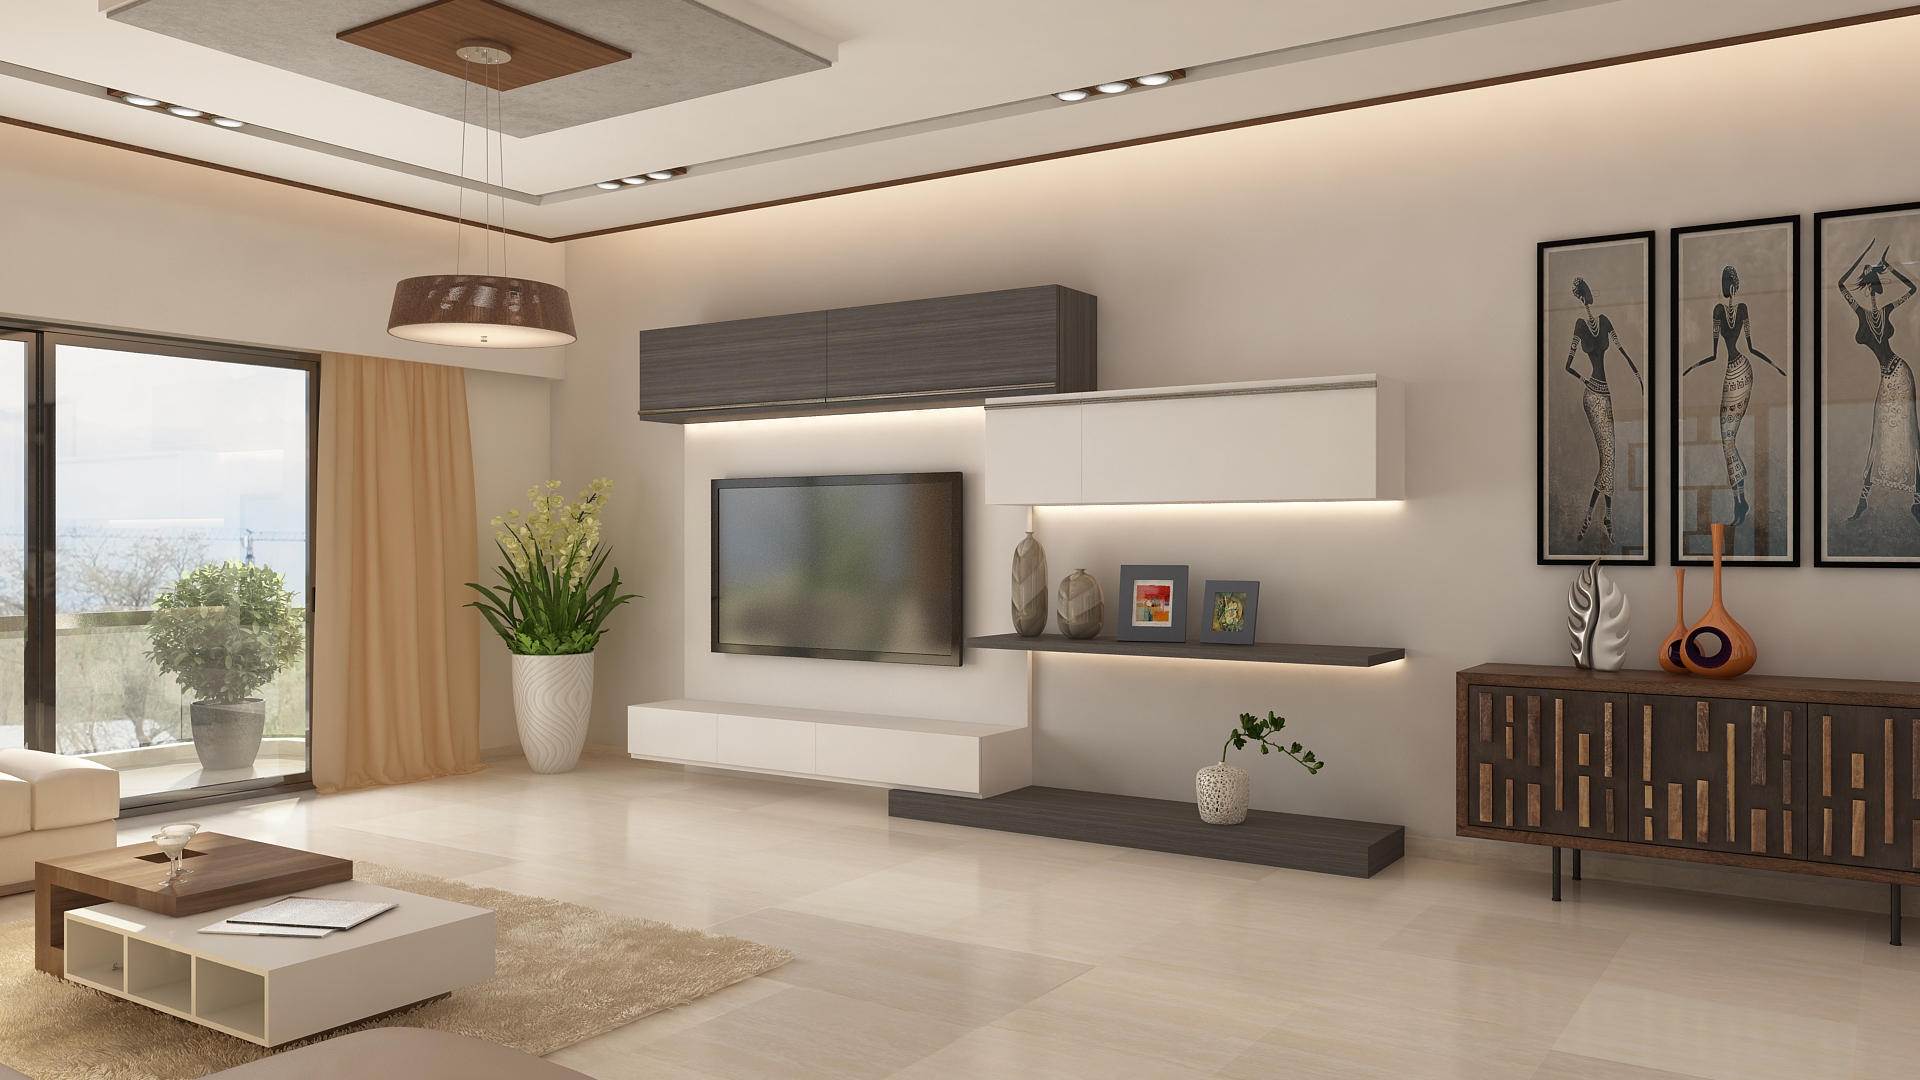 Ghar360 portfolio 2 bhk apartment interior design in jp - Interior living room design ideas ...